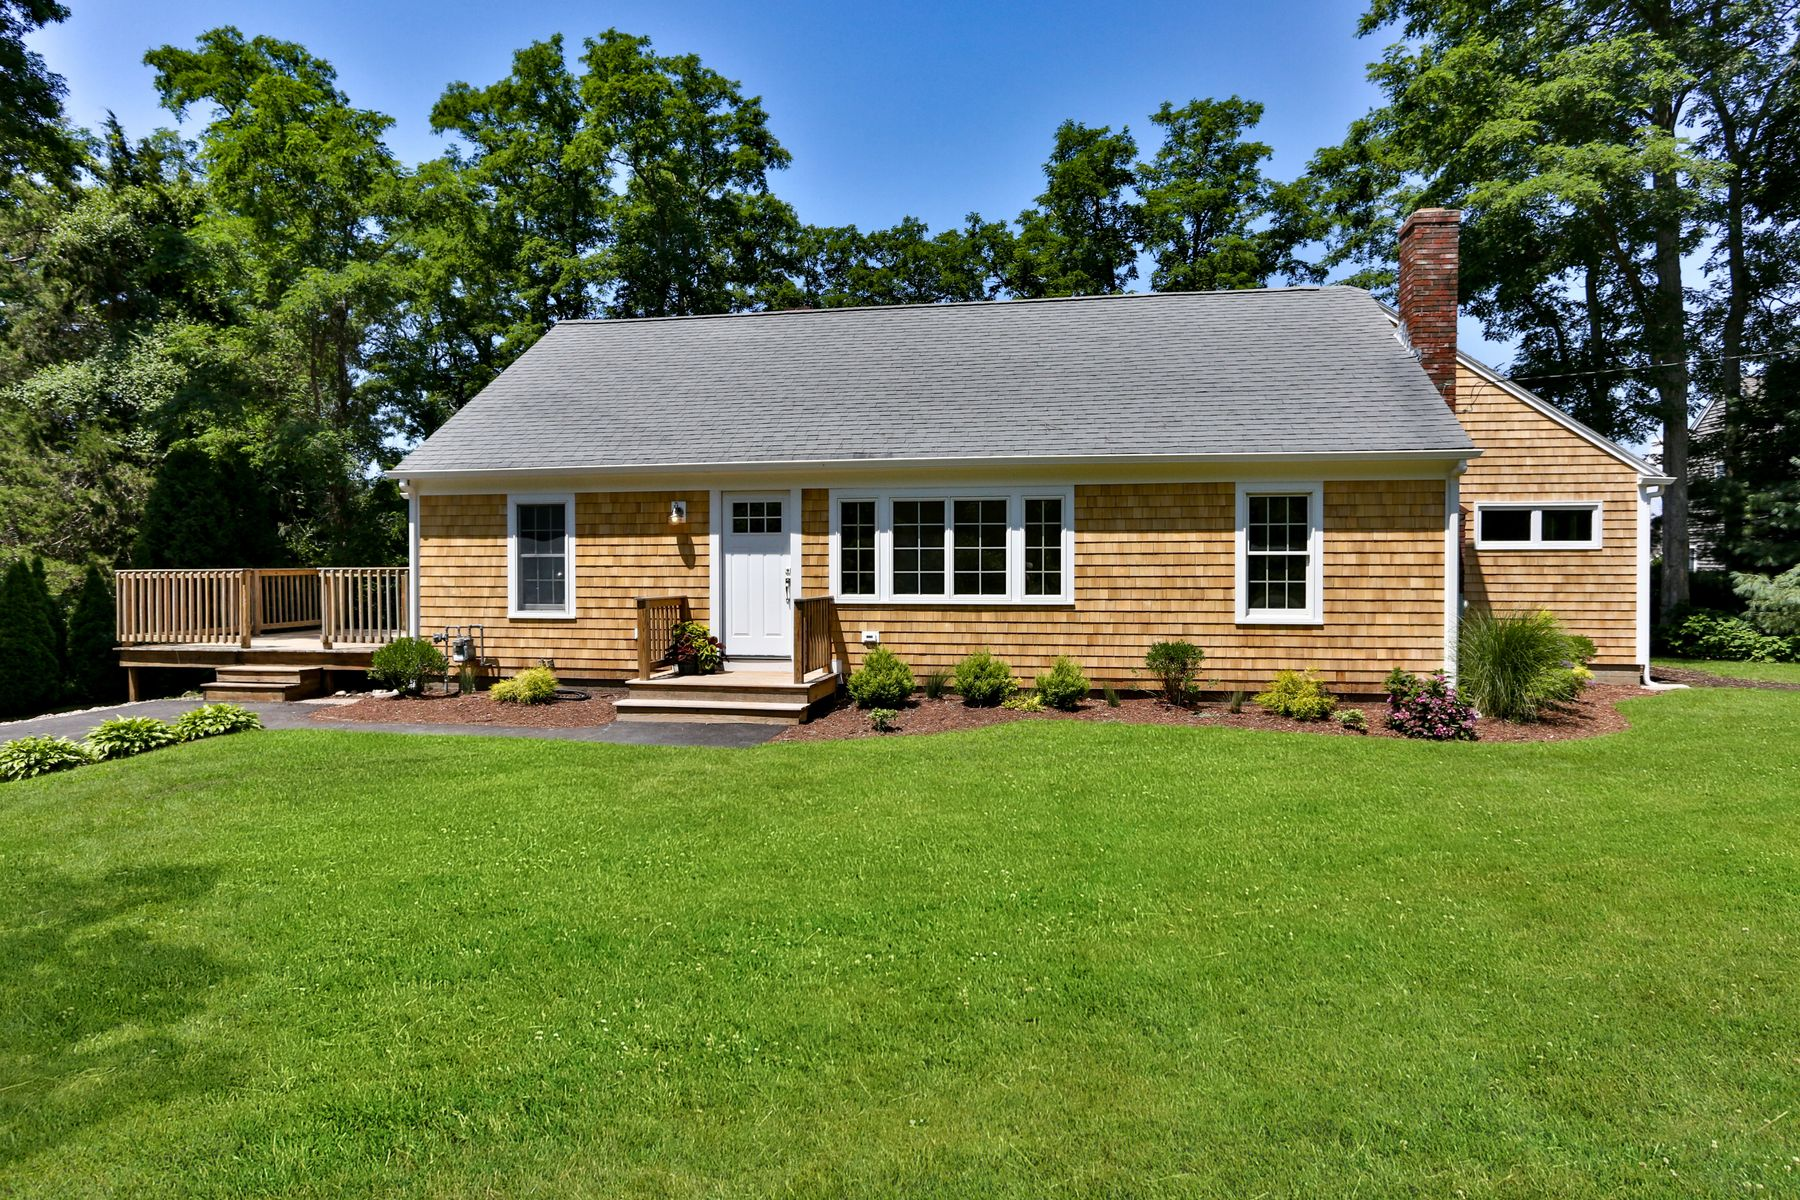 Single Family Homes for Sale at 842 West Falmouth Highway, Falmouth, MA 842 West Falmouth Highway West Falmouth, Massachusetts 02540 United States